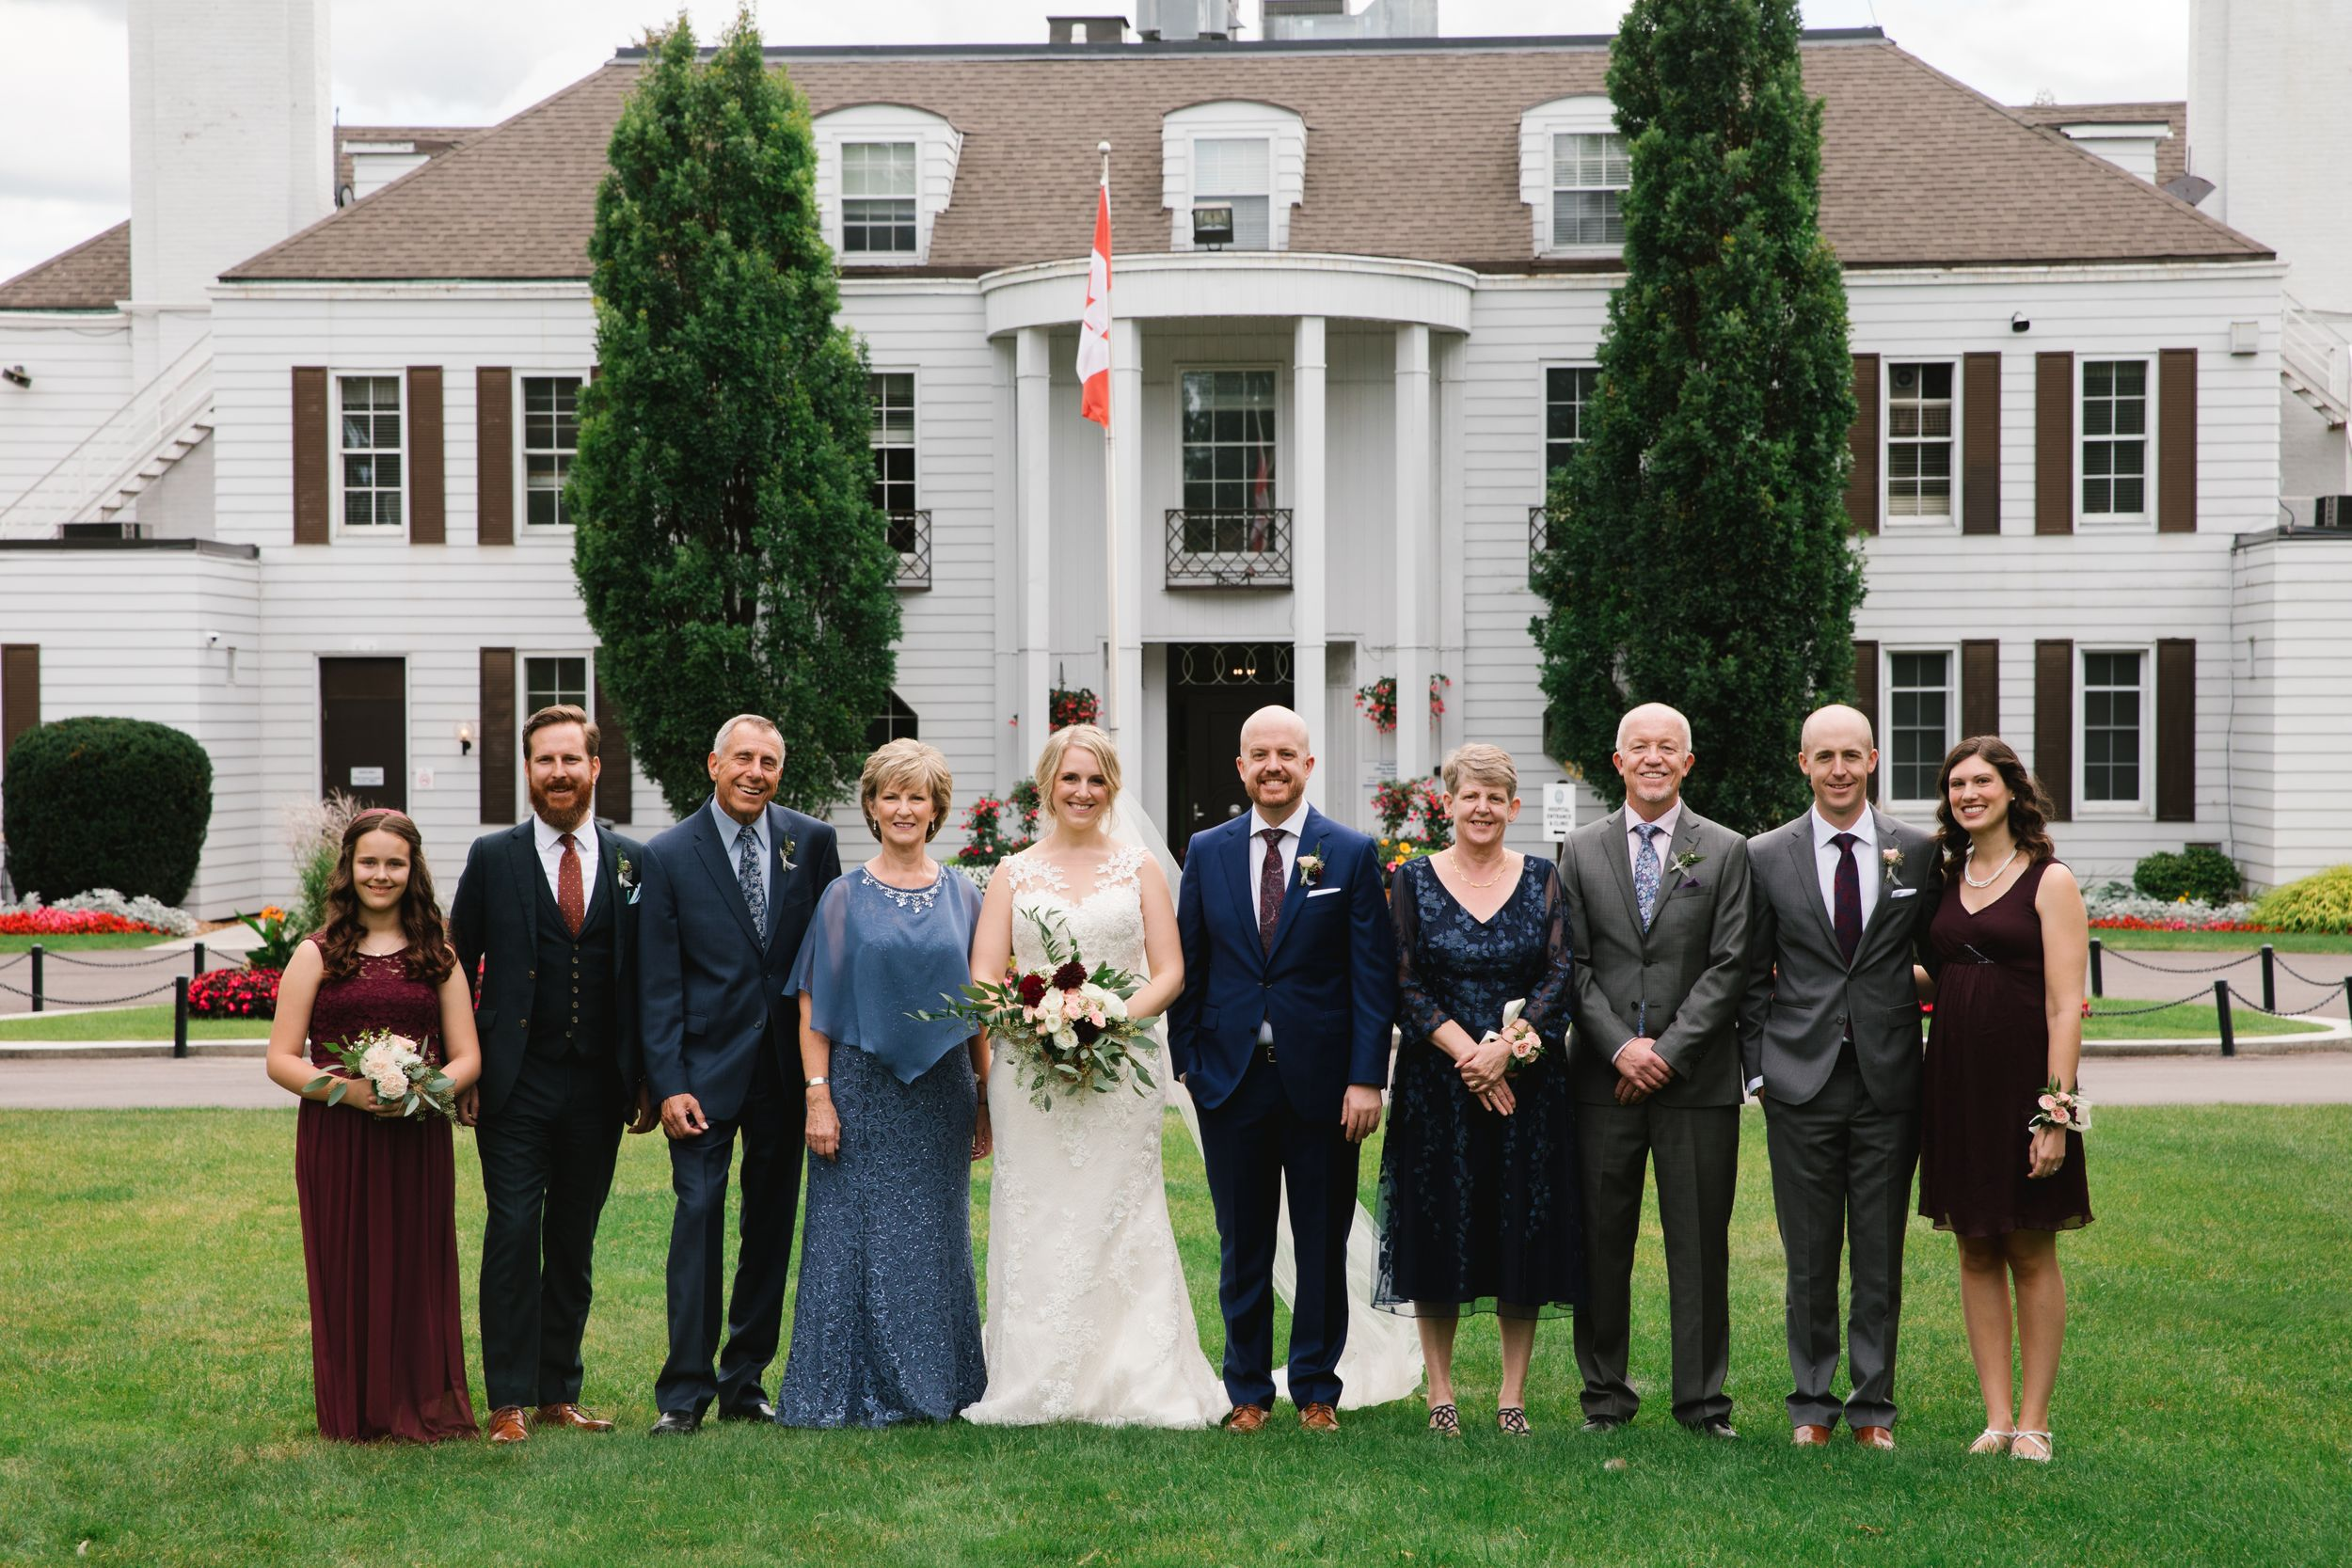 bride and groom with family in front of white building shouldice hospital wedding